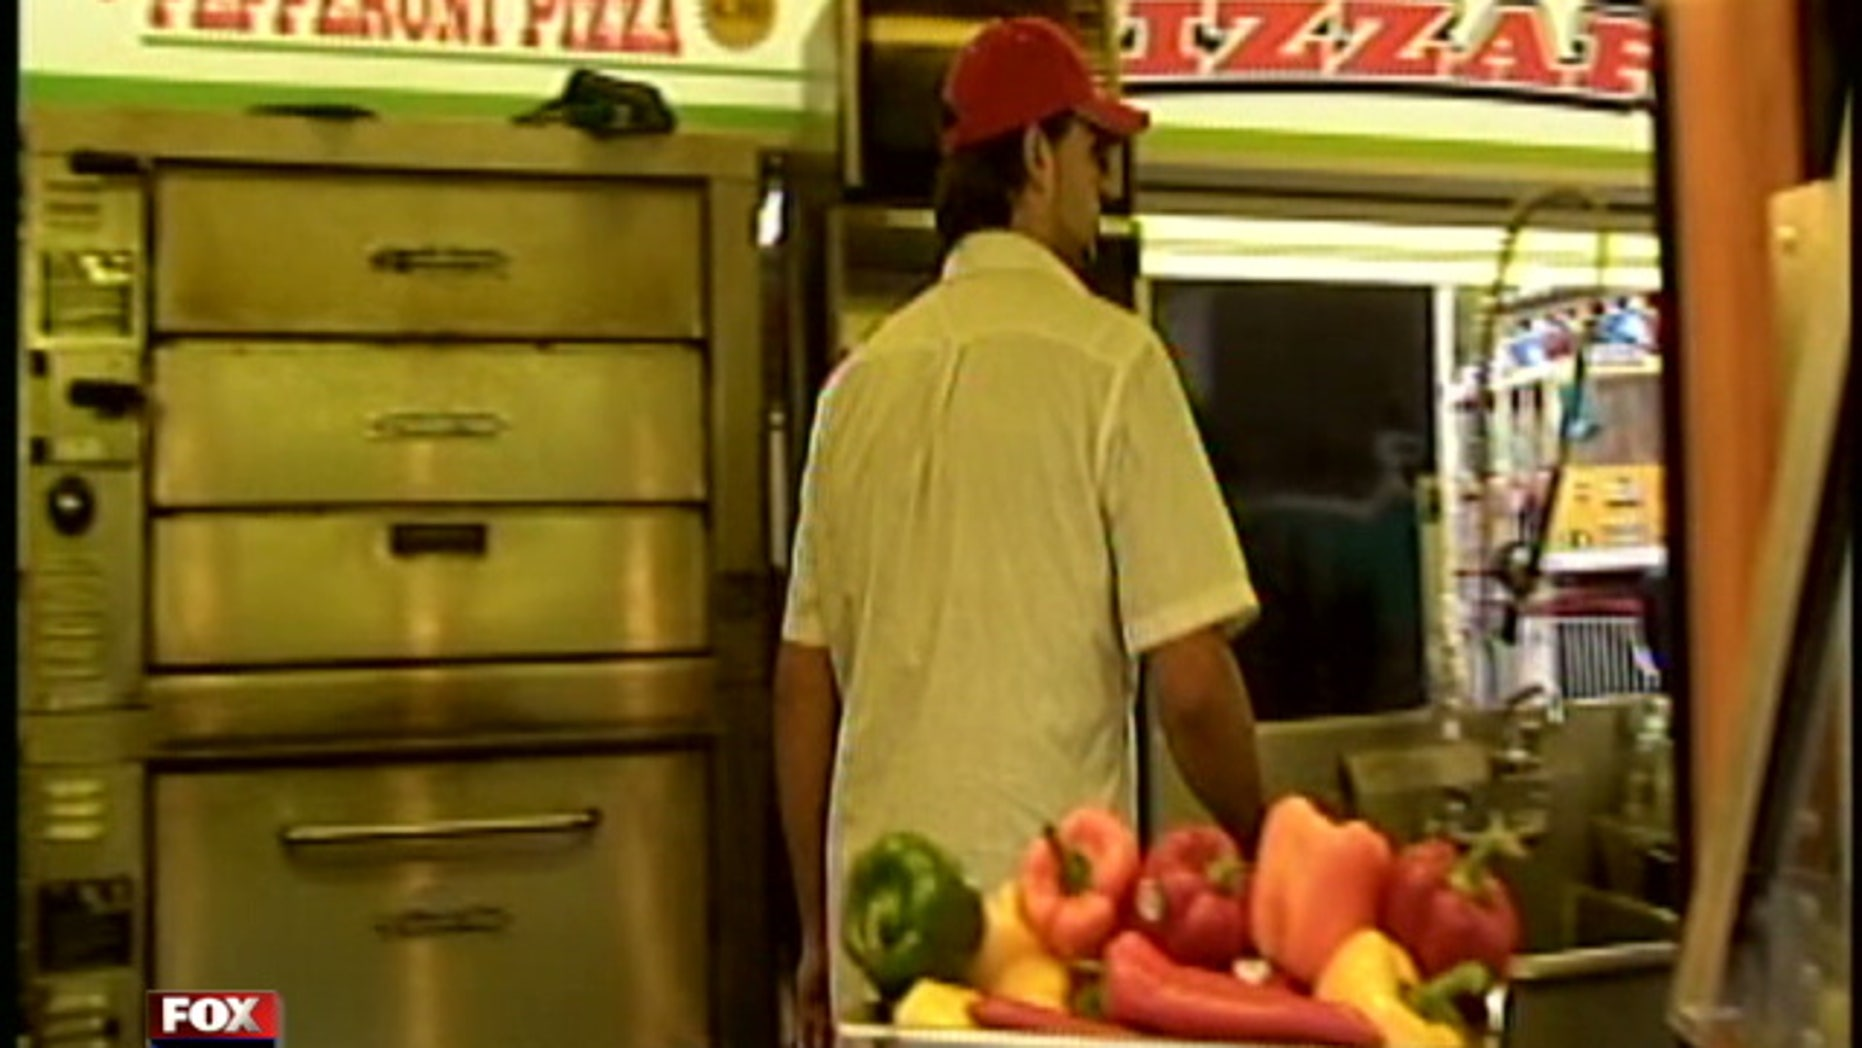 Yousef Hashem, who allegedly groped a teenage girl, works at a local family carnival making pizza in Salem, Mass.